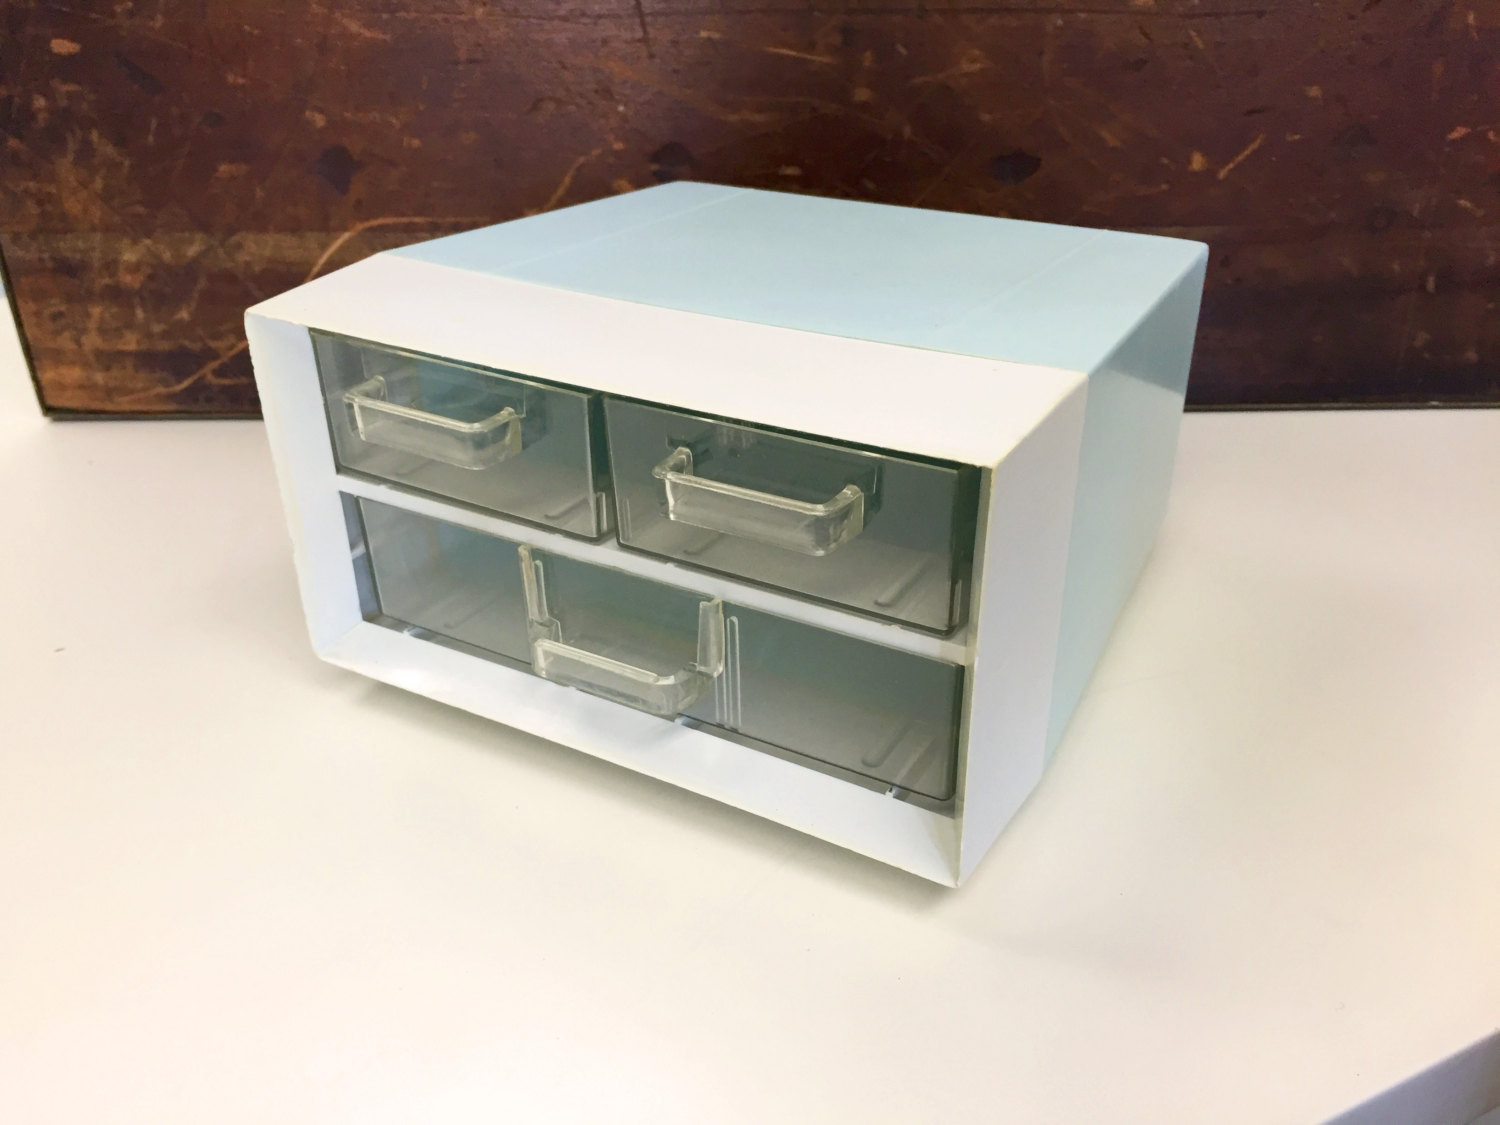 White Desk Organizer  Blue & White Desk Organizer with 3 Drawers Campro Made in